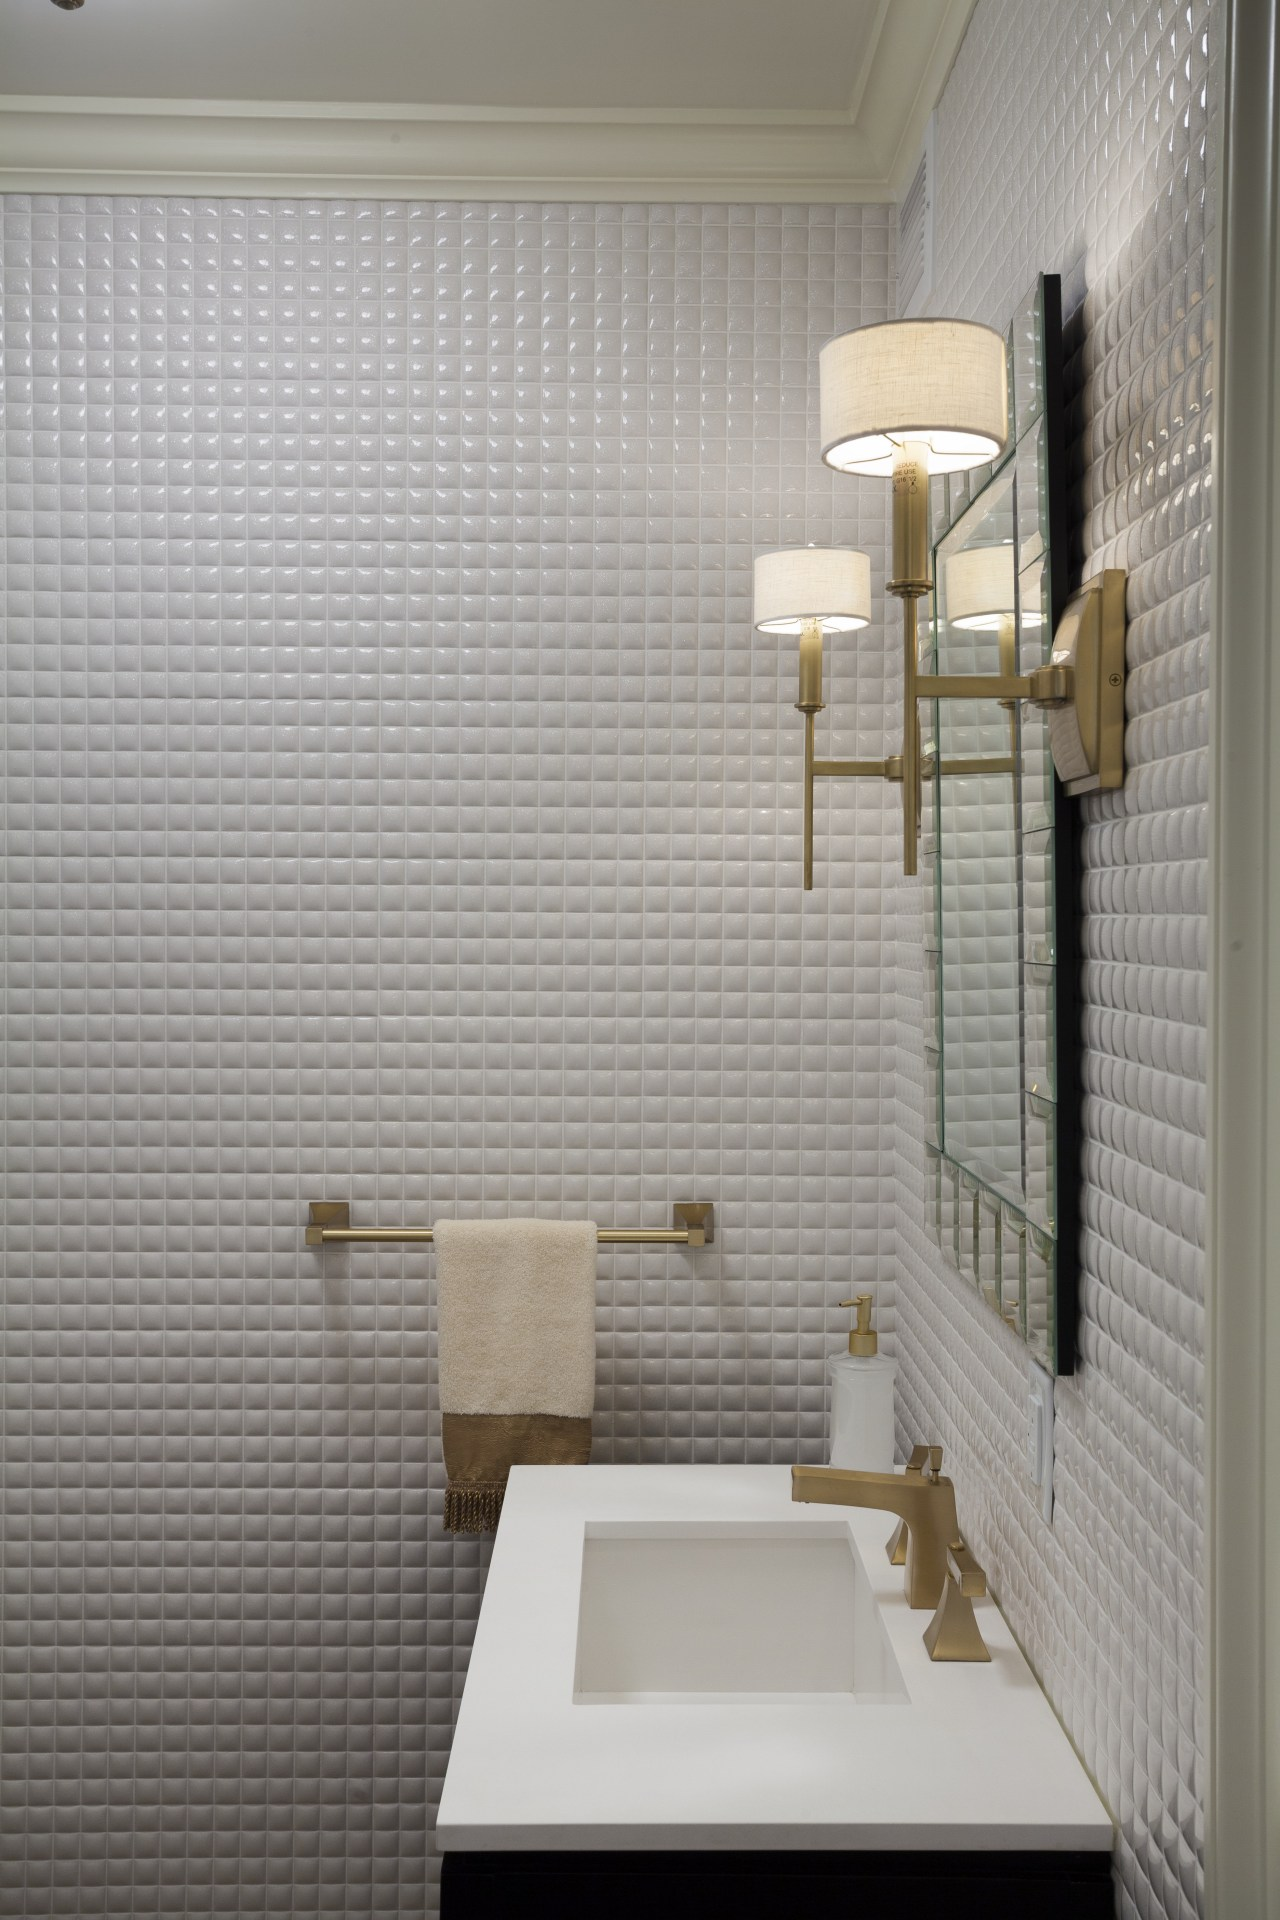 Glossy white mosaic tiles in this renovated powder bathroom, daylighting, floor, interior design, plumbing fixture, product design, room, sink, tap, tile, wall, gray